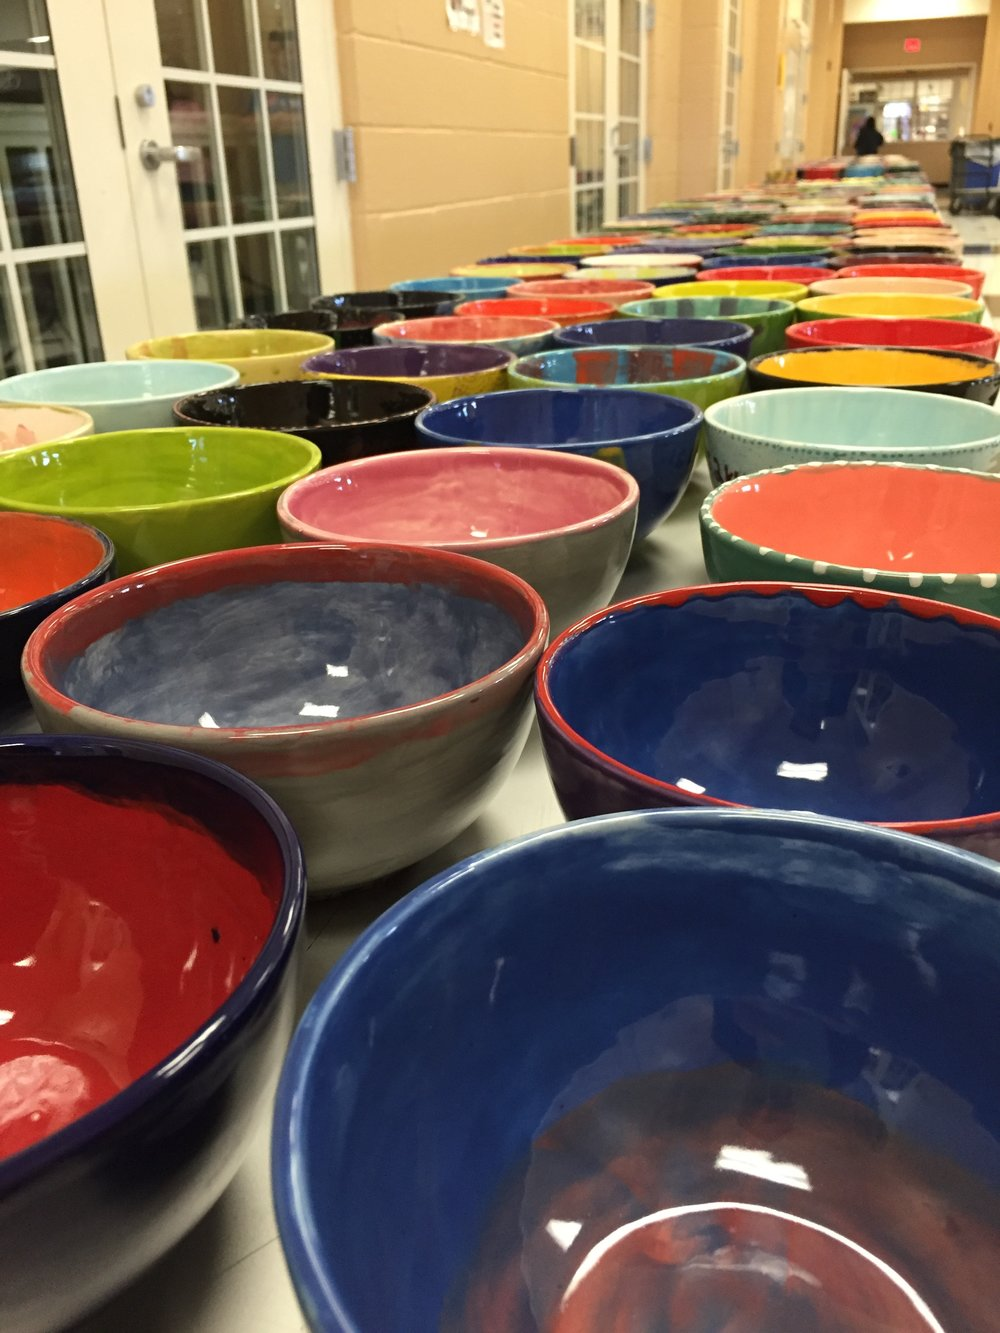 Join the Souper Supper on March 8th and stick around to paint your own bowl for the upcoming Empty Bowls event on April 12th.